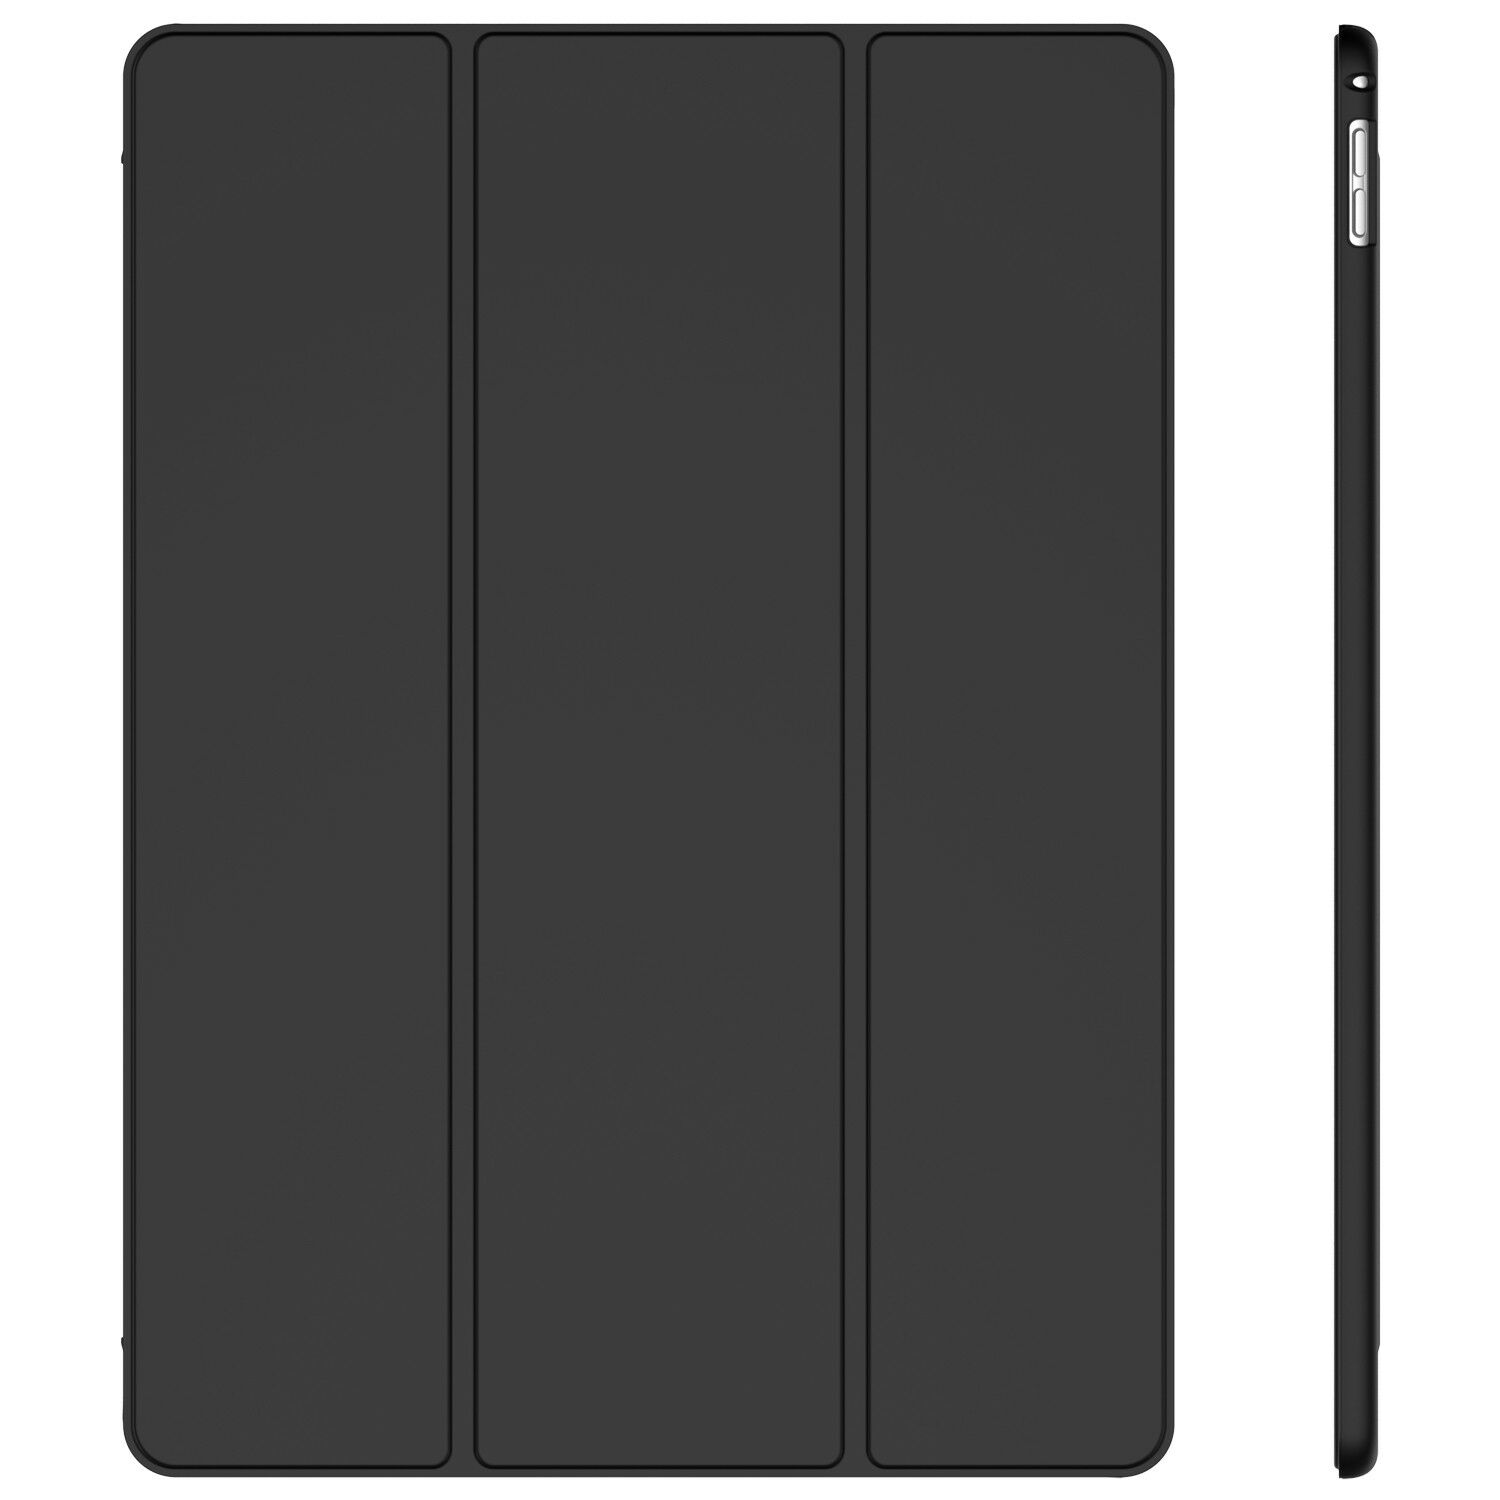 JETech iPad Pro Smart Case Cover for Apple iPad Pro 12.9 201